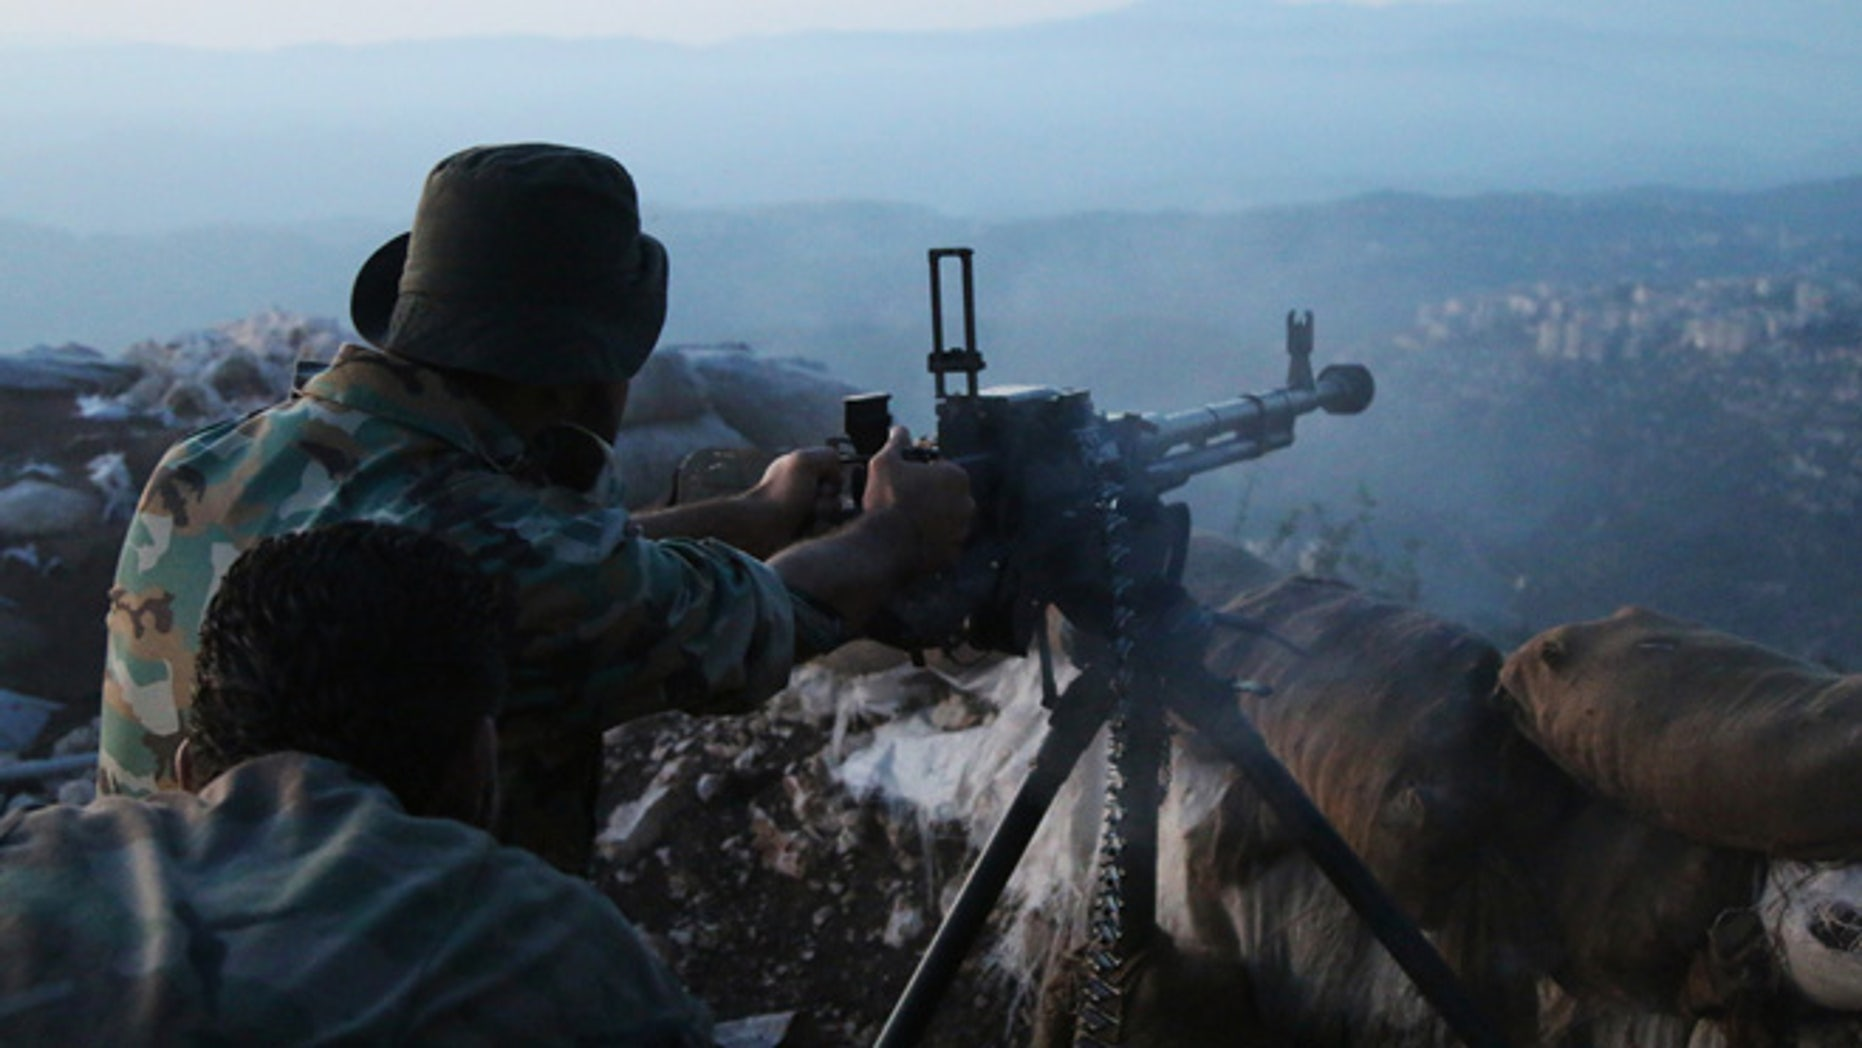 Oct. 10, 2015: Syrian army personnel fire a machine gun in Latakia province, about 12 miles from the border with Turkey, Syria.